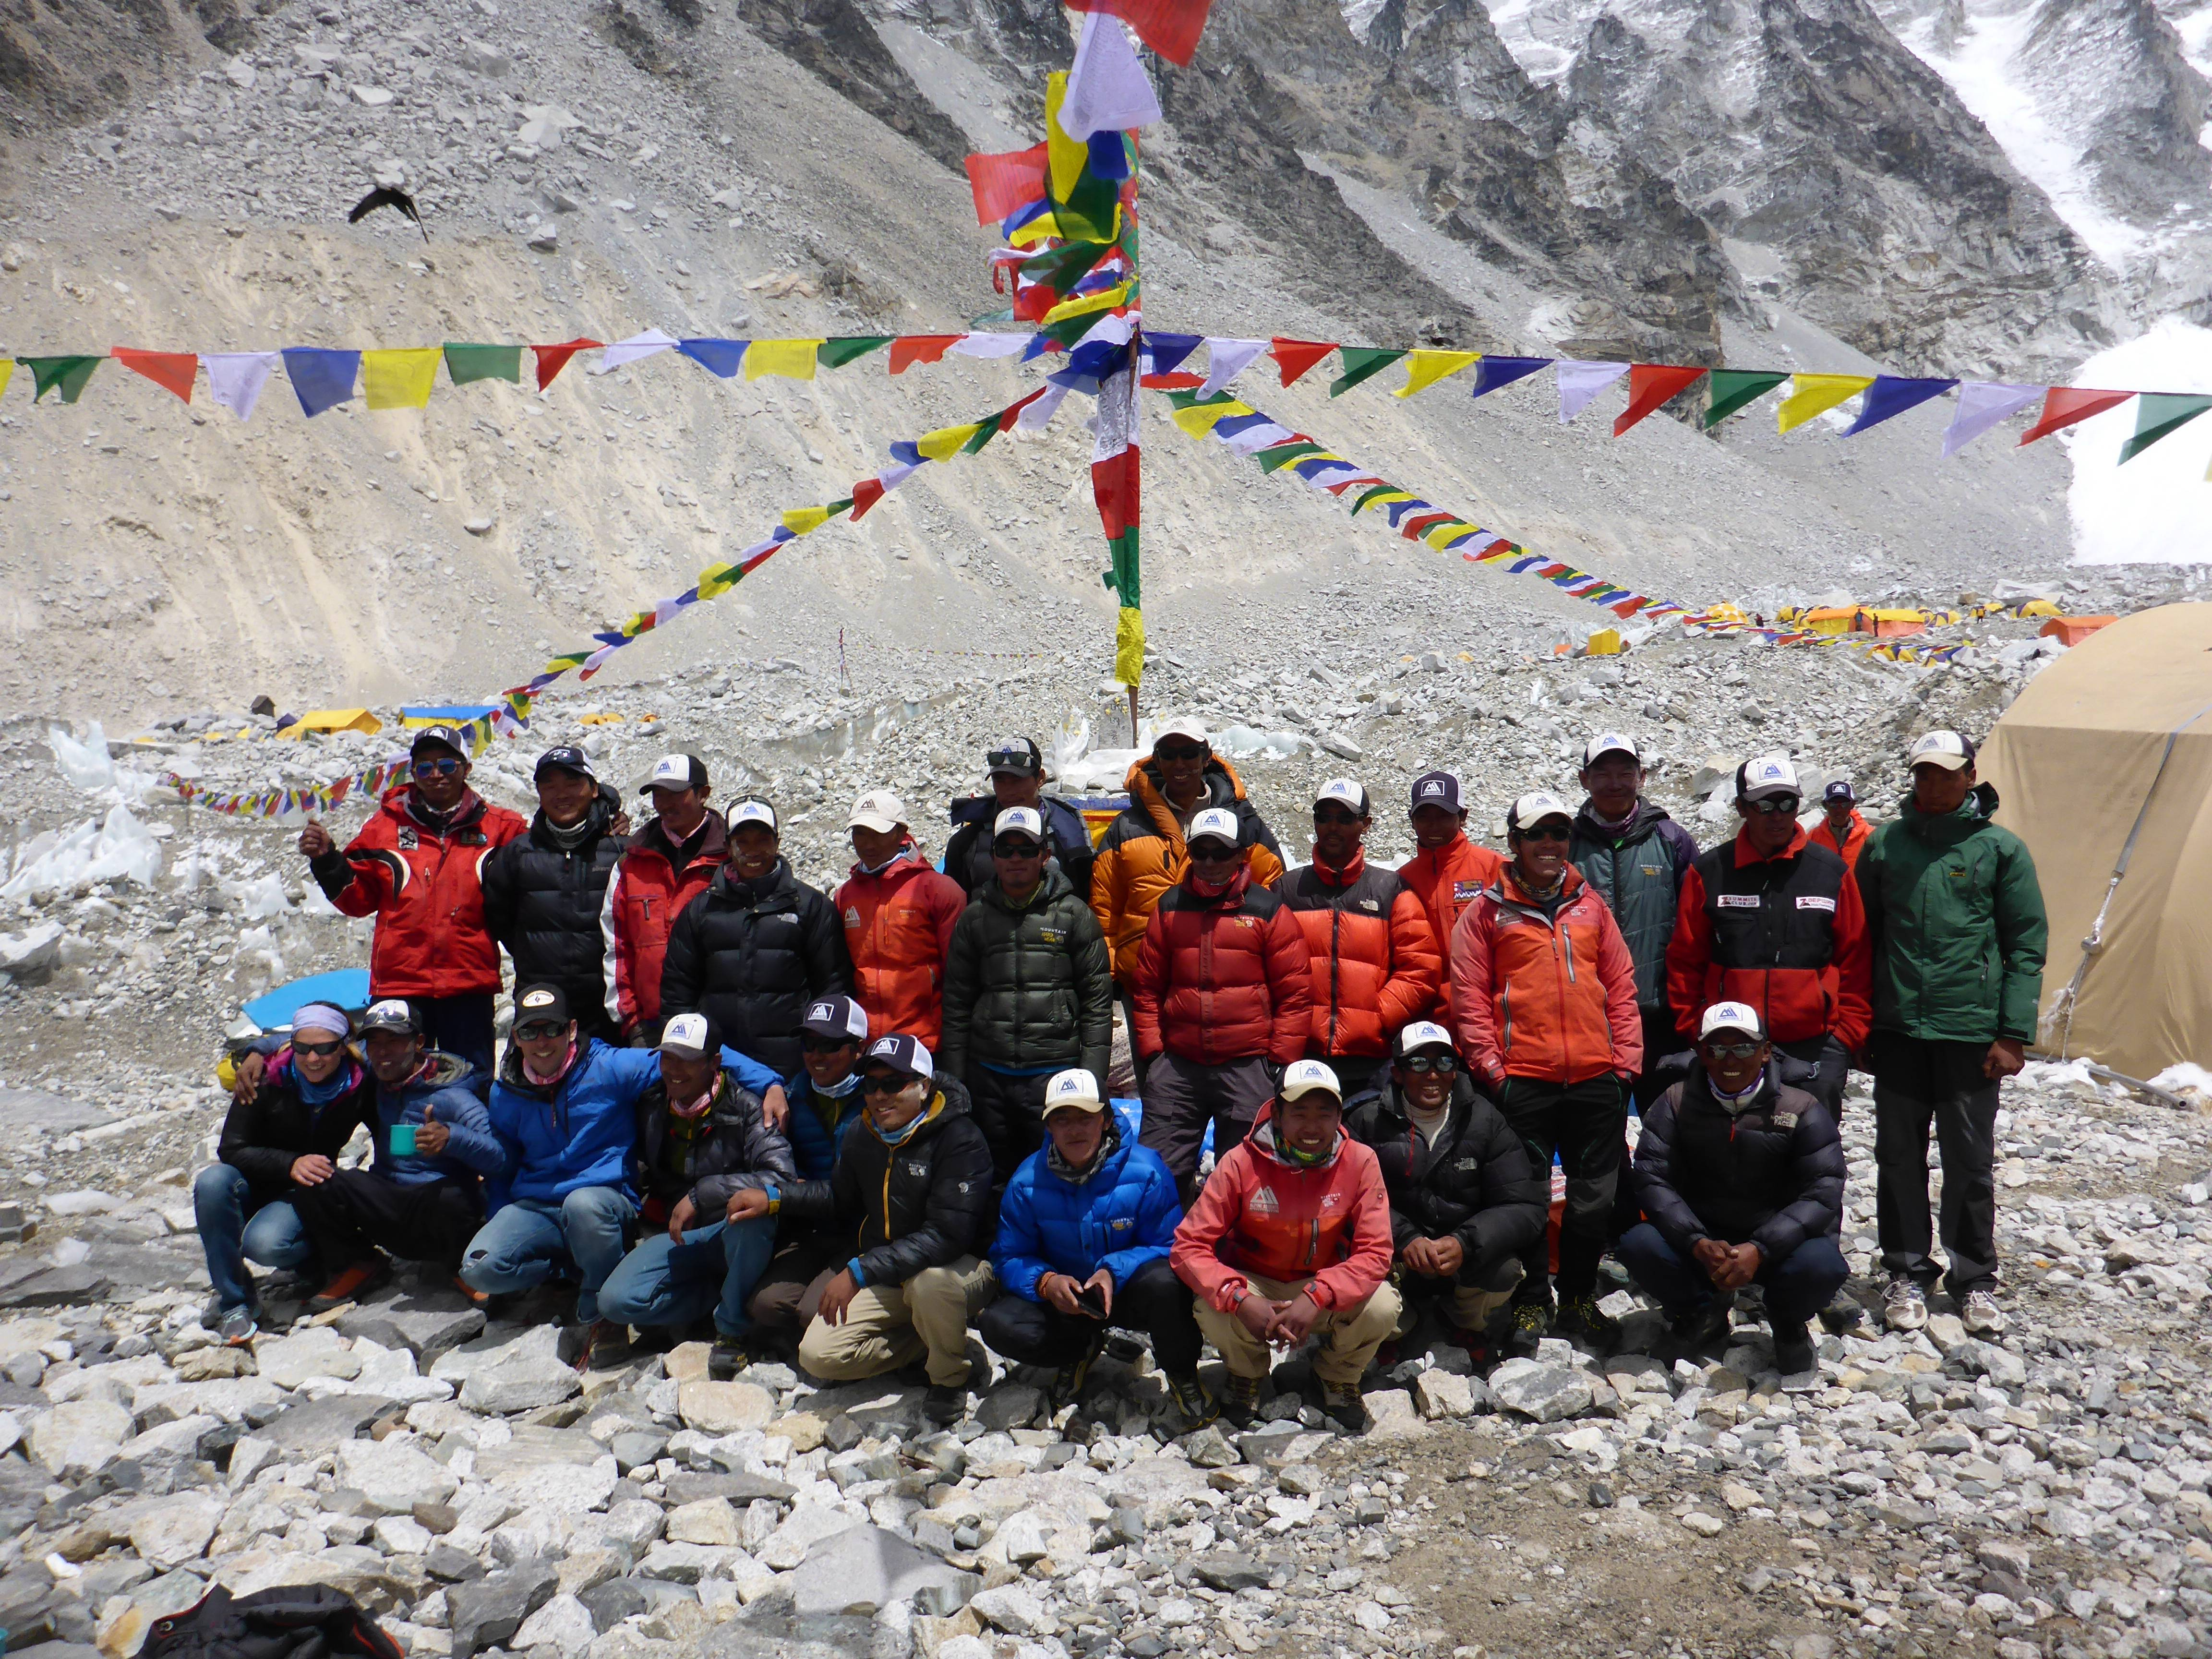 Taking this photo of the guides and Sherpas hired to lead his climbing team to the top of Mount Everest, Joel Schauer of Hawthorn Woods says five of the Sherpas were killed in an avalanche the next morning.